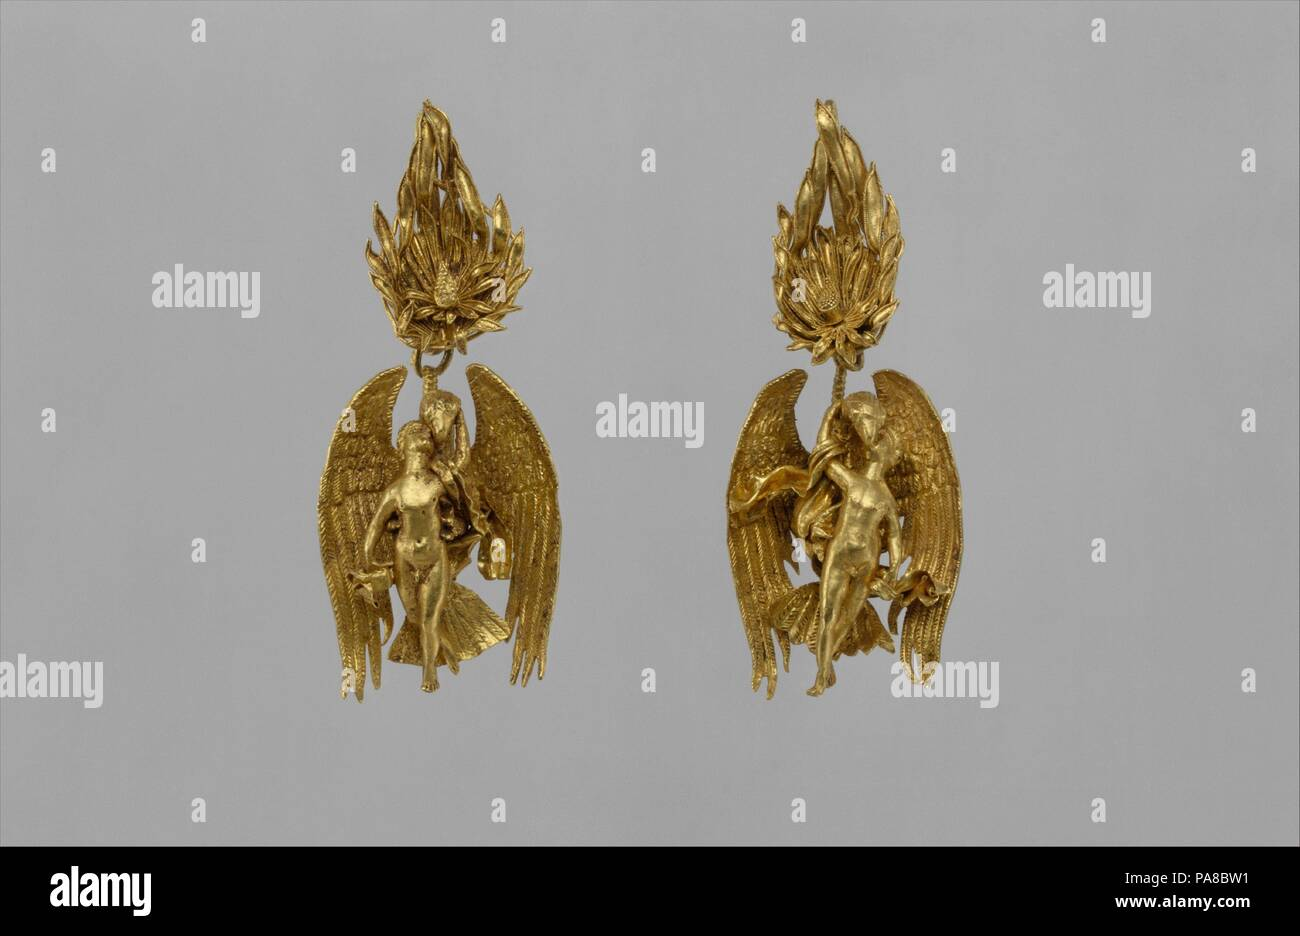 buy popular 88dc8 d105d Pair of gold earrings with Ganymede and the eagle. Culture  Greek.  Dimensions  total H. 2 3 8 in. (6 cm)  H. of rosette 1 in. (2.5 cm)  H. of  Ganymede group ...